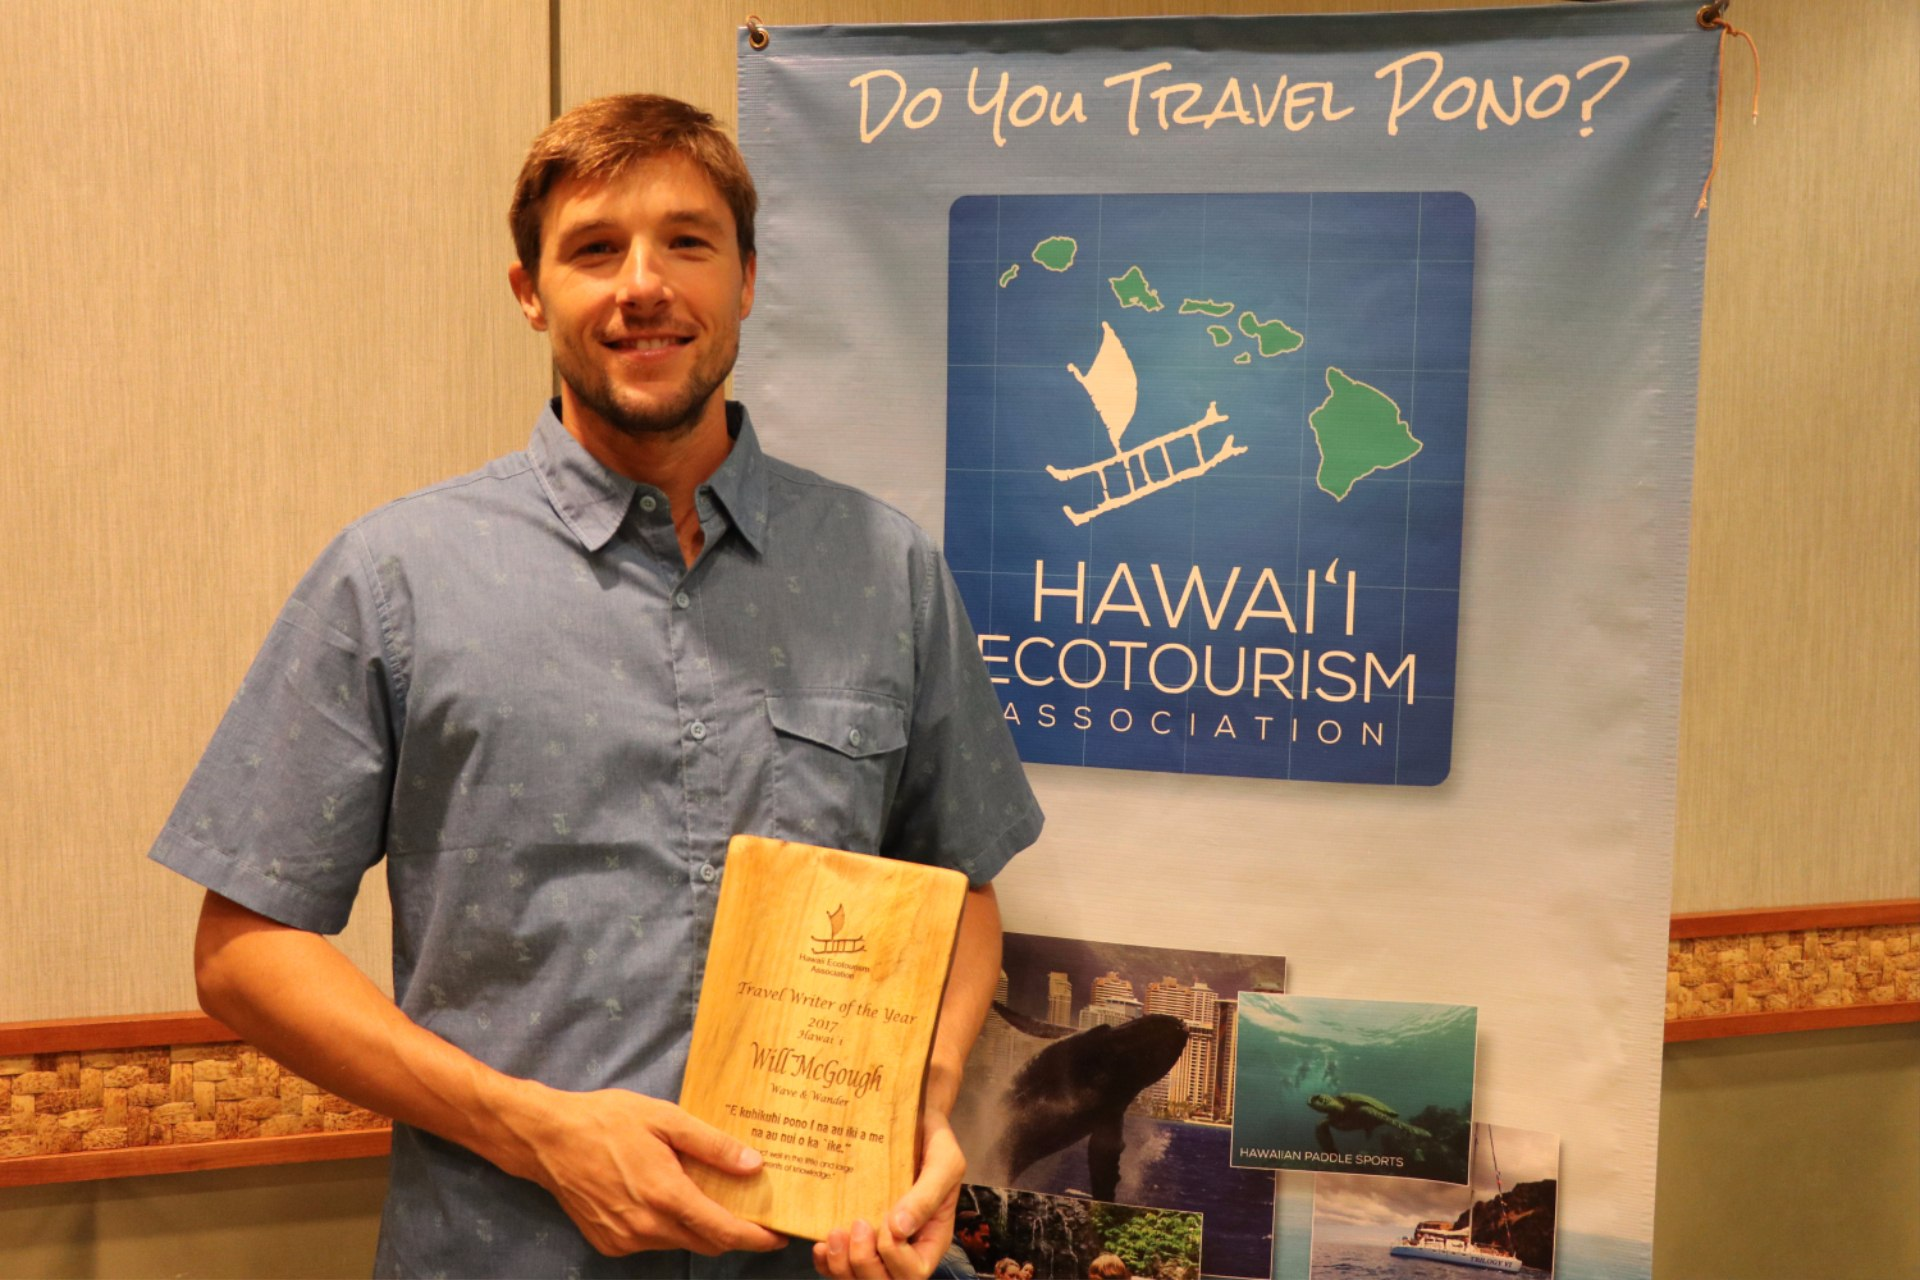 Travel writer of the year